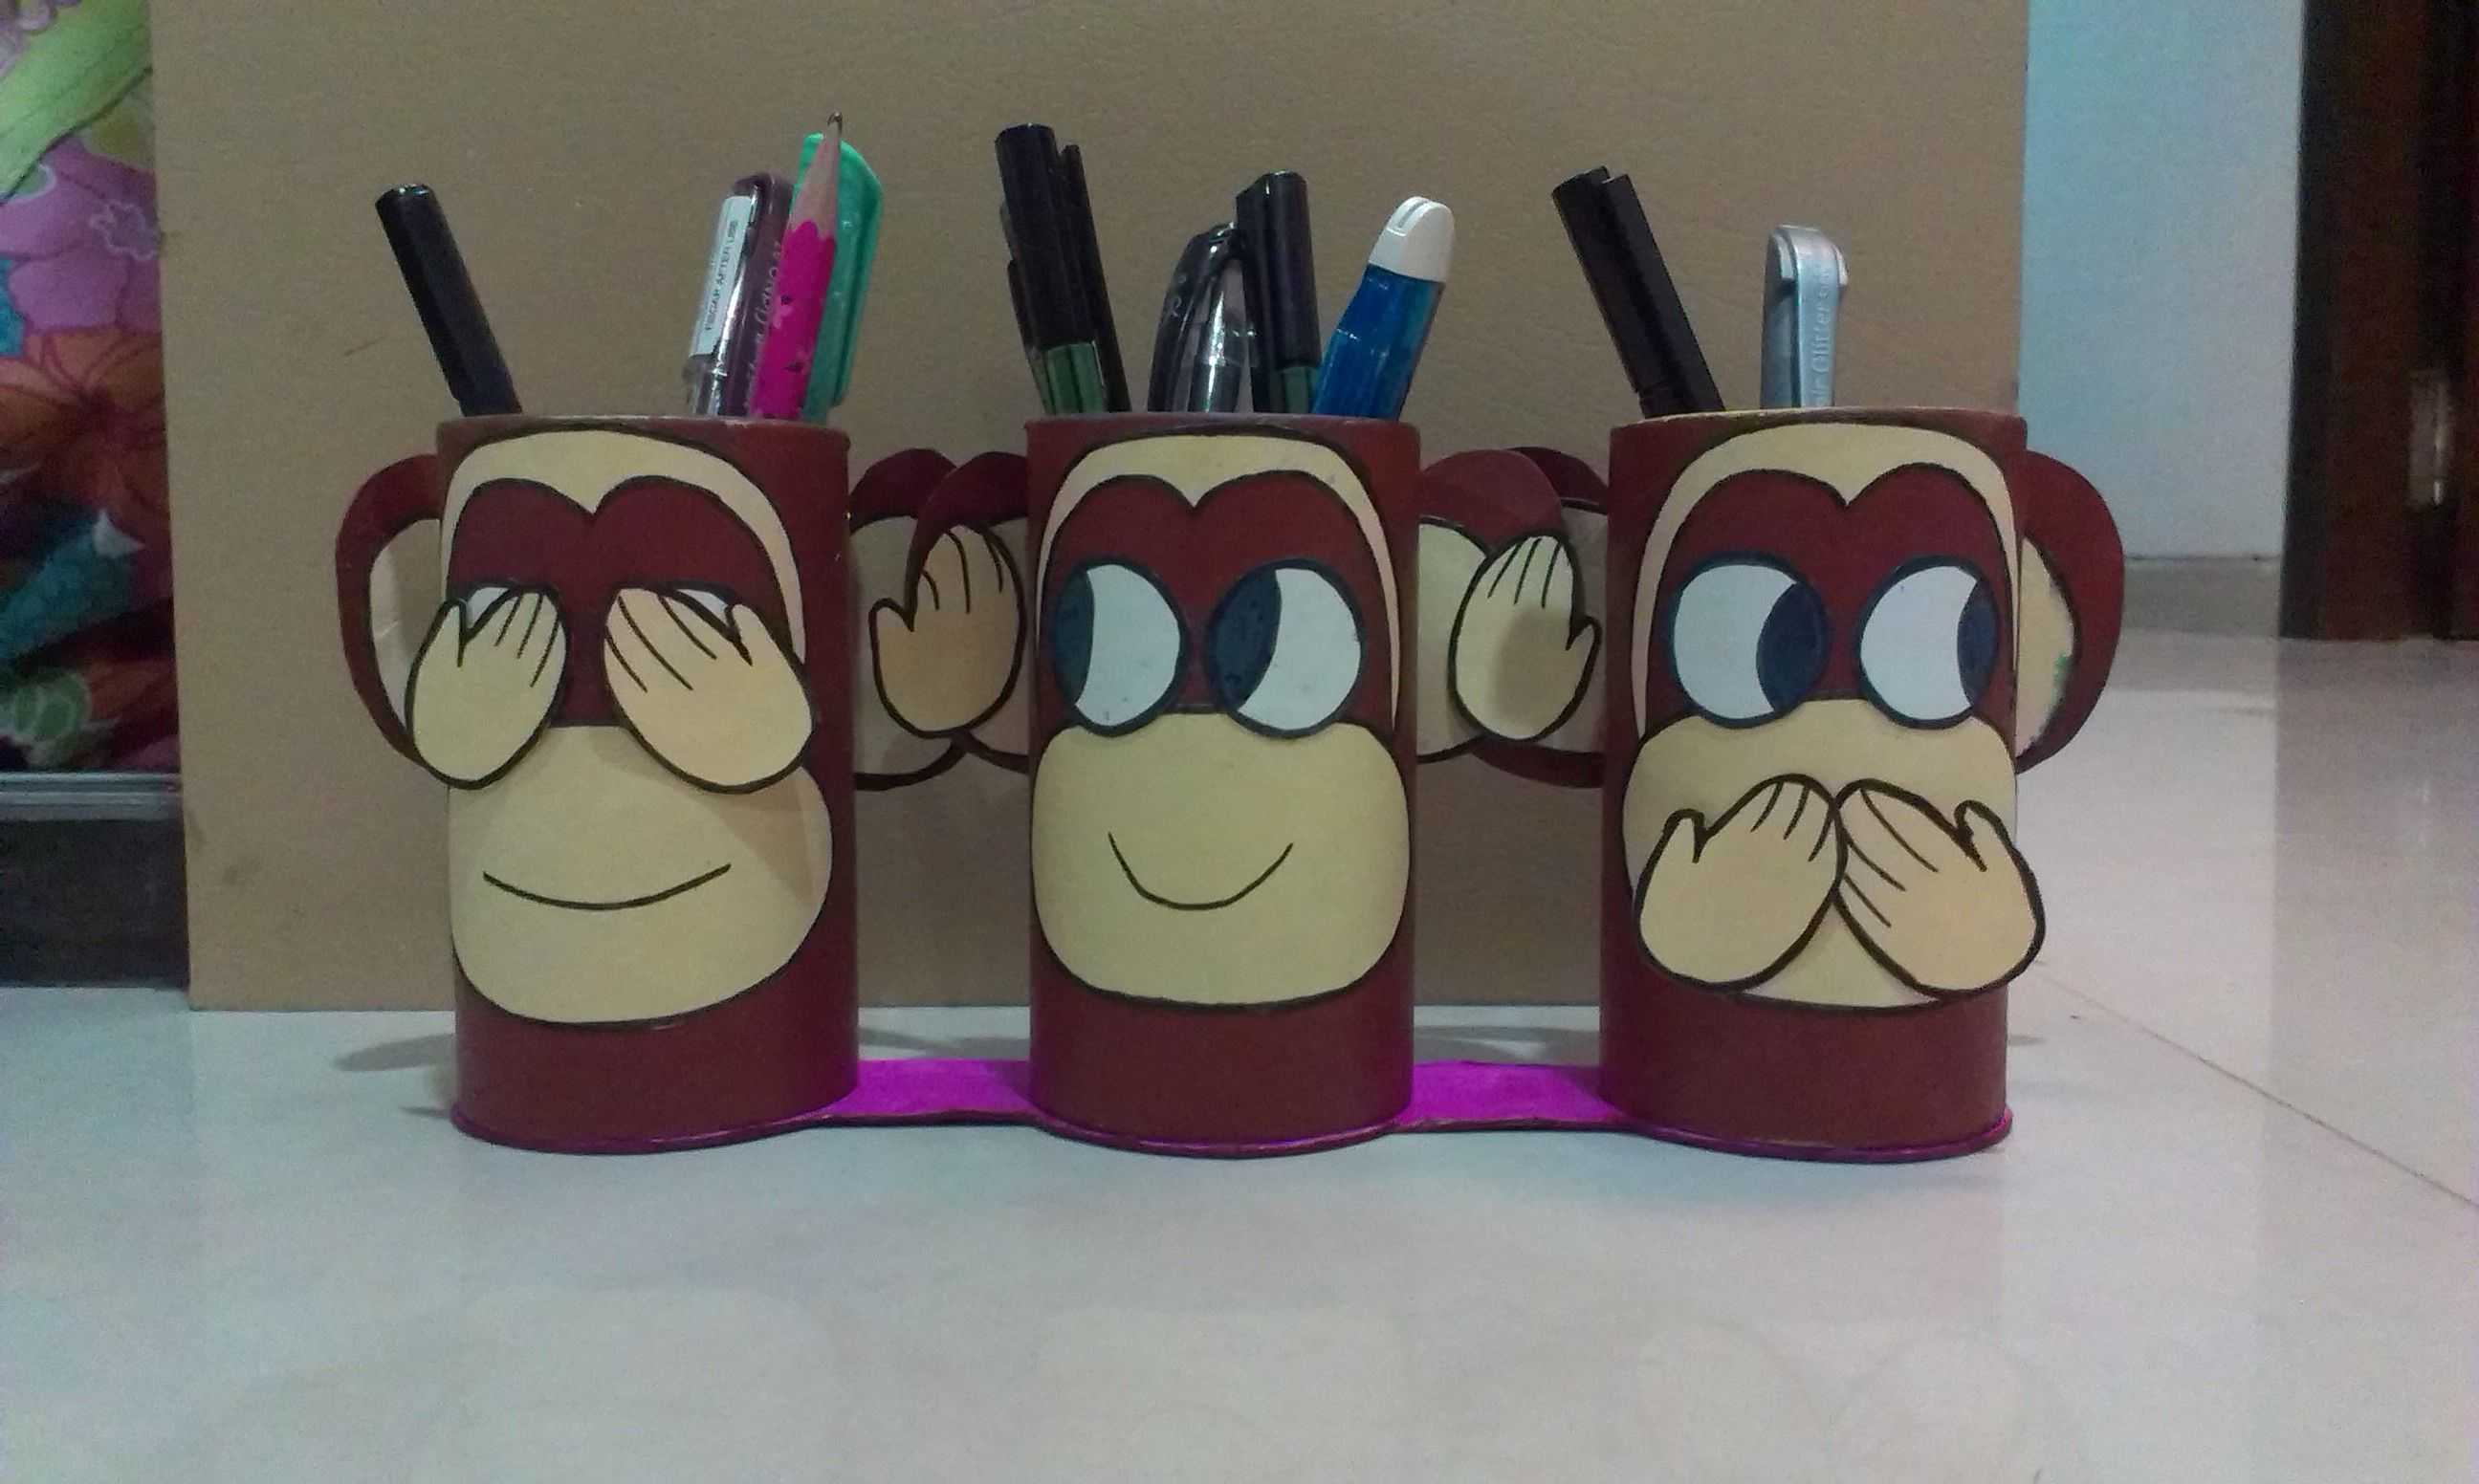 Gandhiji 39 s 3 monkeys pen stand diy diypenstand best out for To make best out of waste